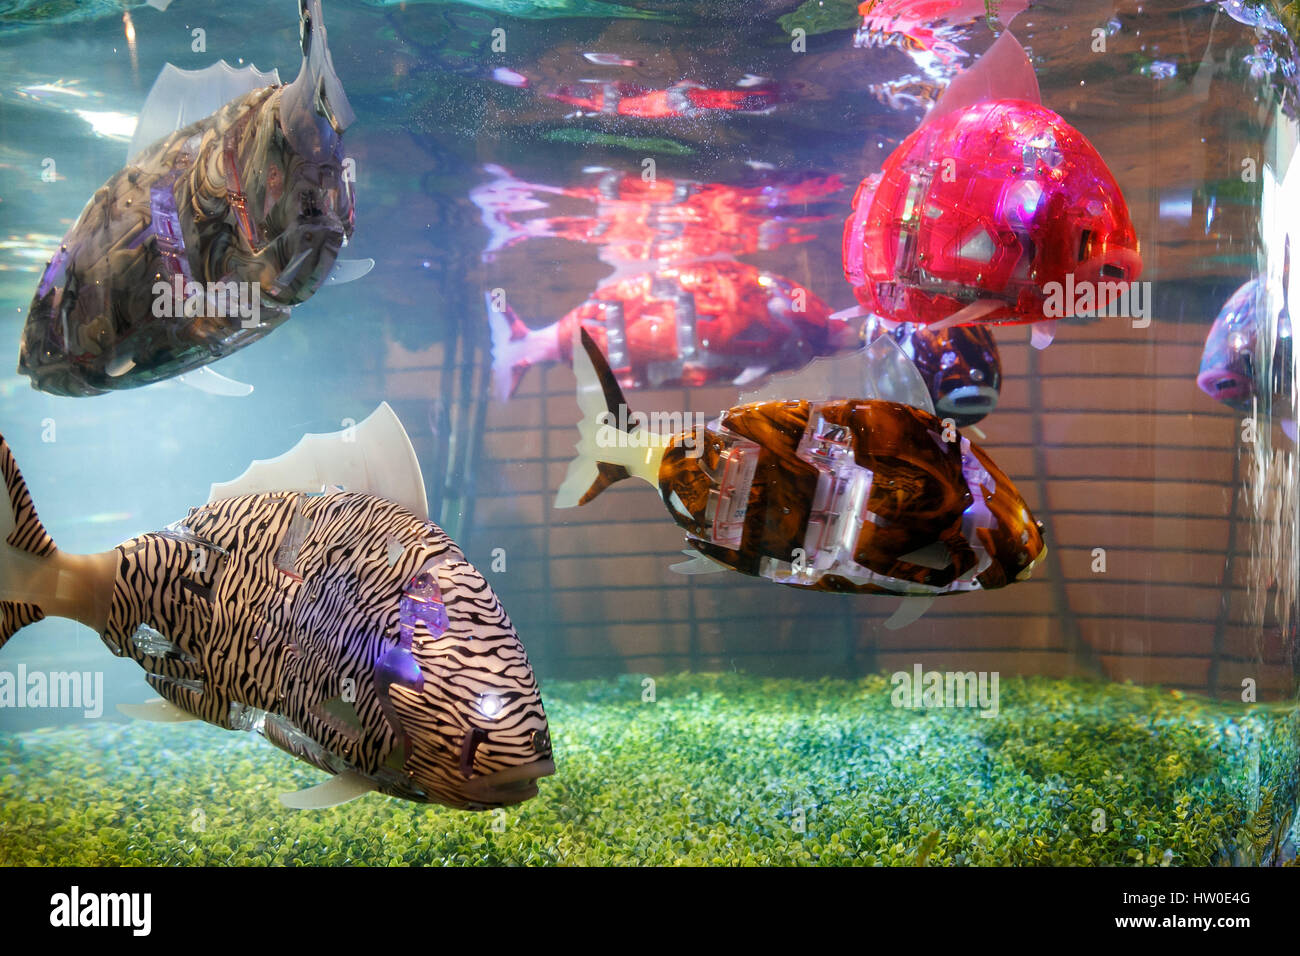 Tokyo Japan 15th March 2017 Fish Robots Swim Into The Fish Tank